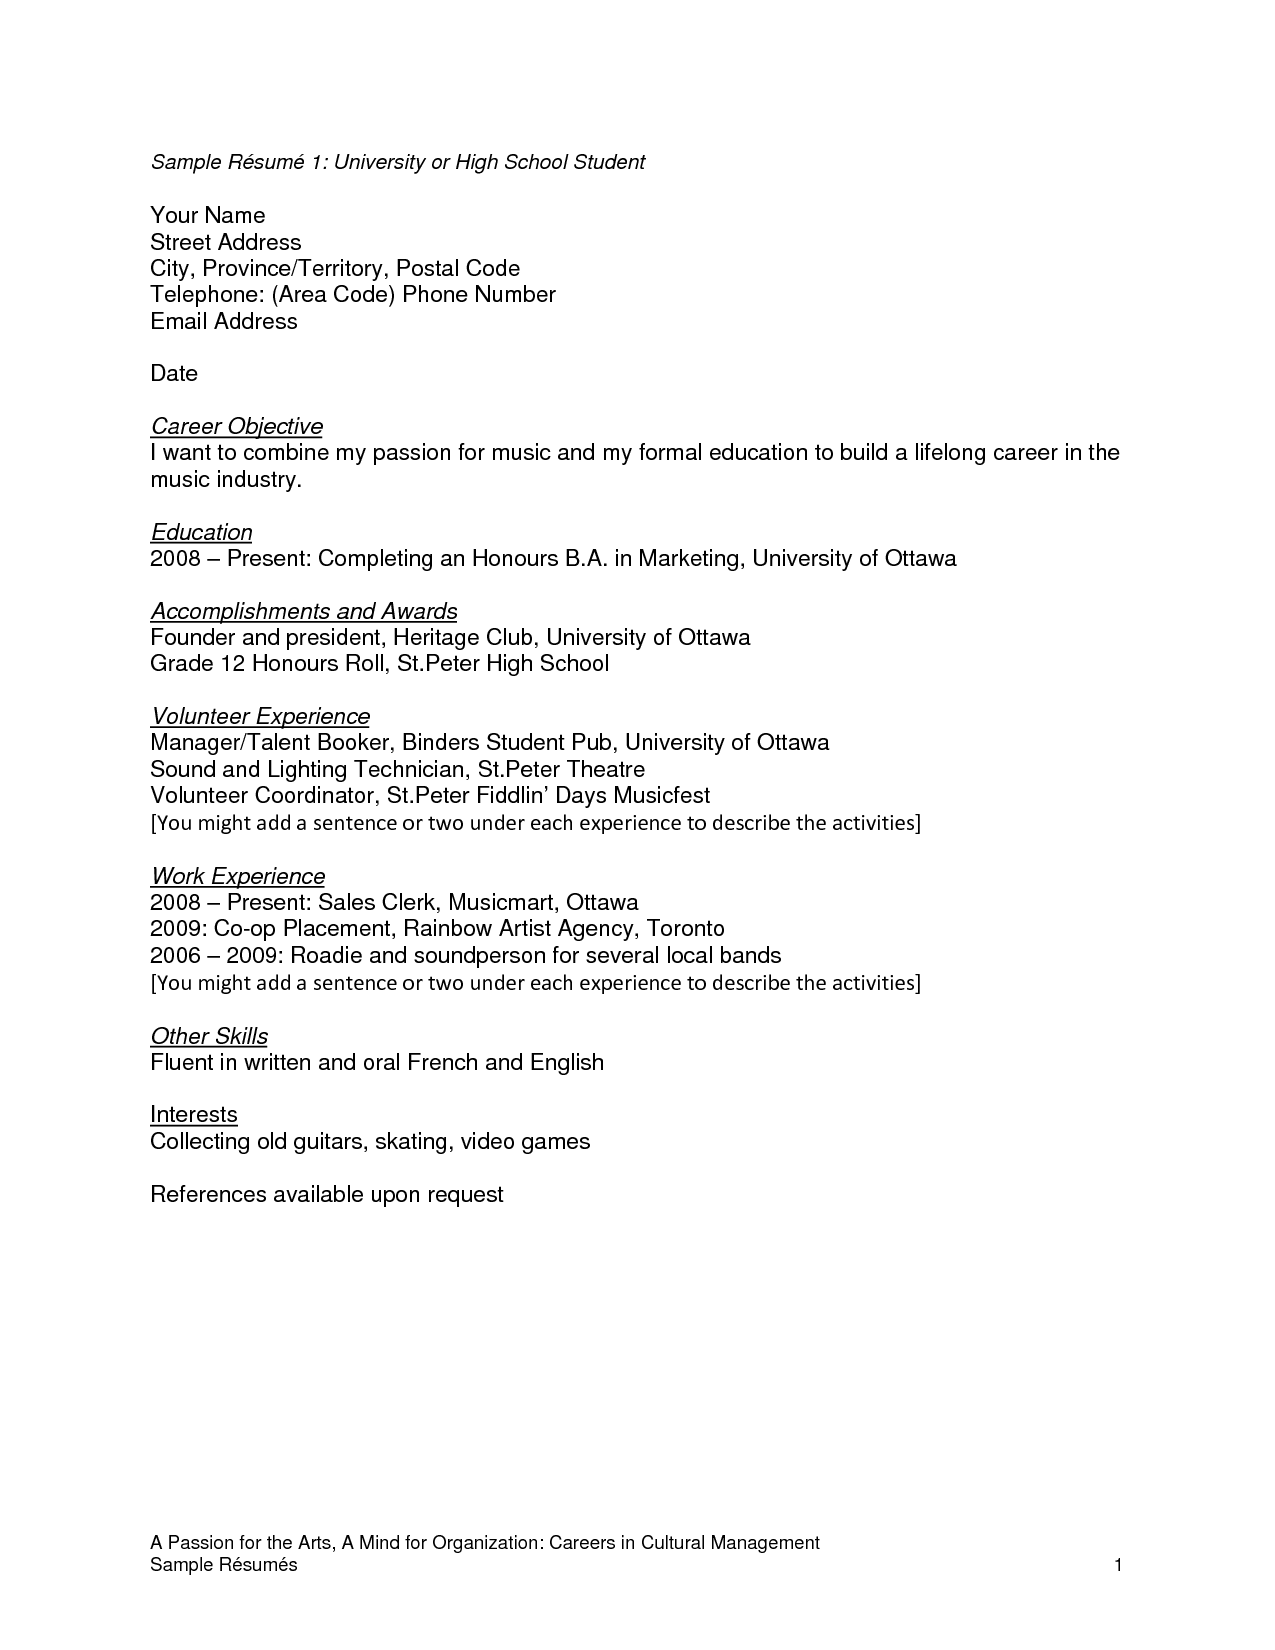 resume Resume For High School Student resume samples for high school students flickr photo sharing httpwww